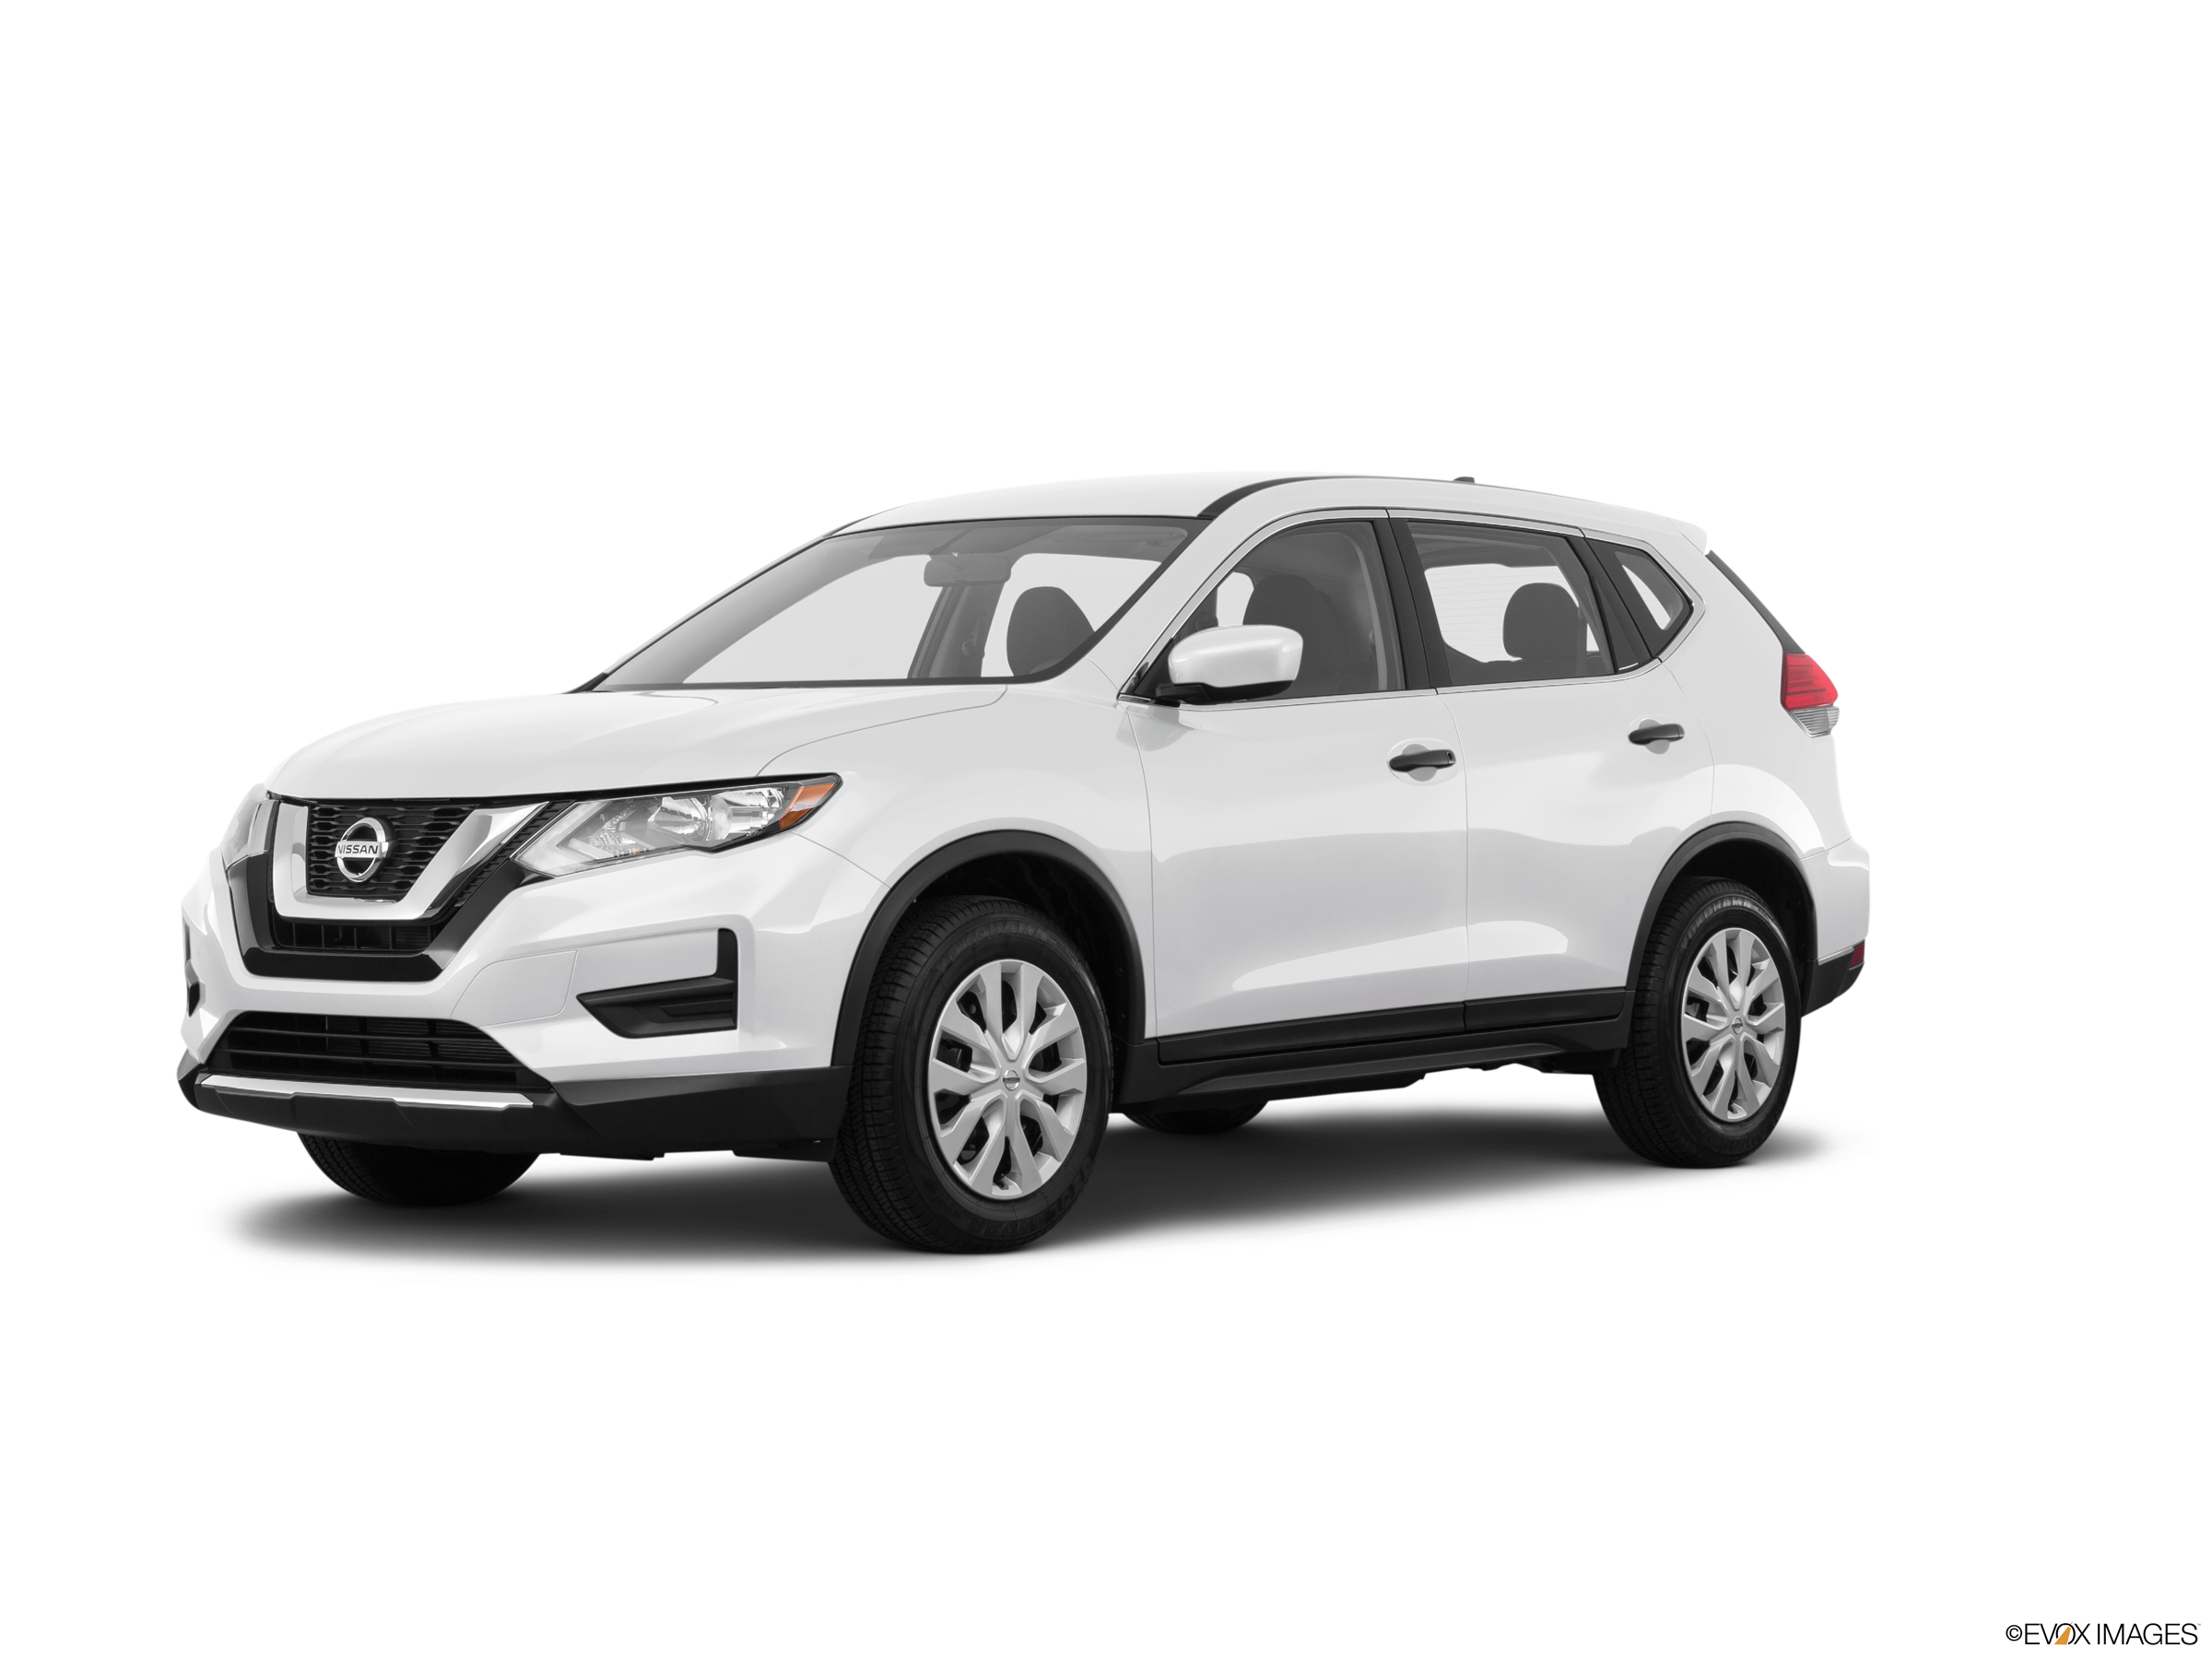 2017 Nissan Rogue Values Cars For Sale Kelley Blue Book